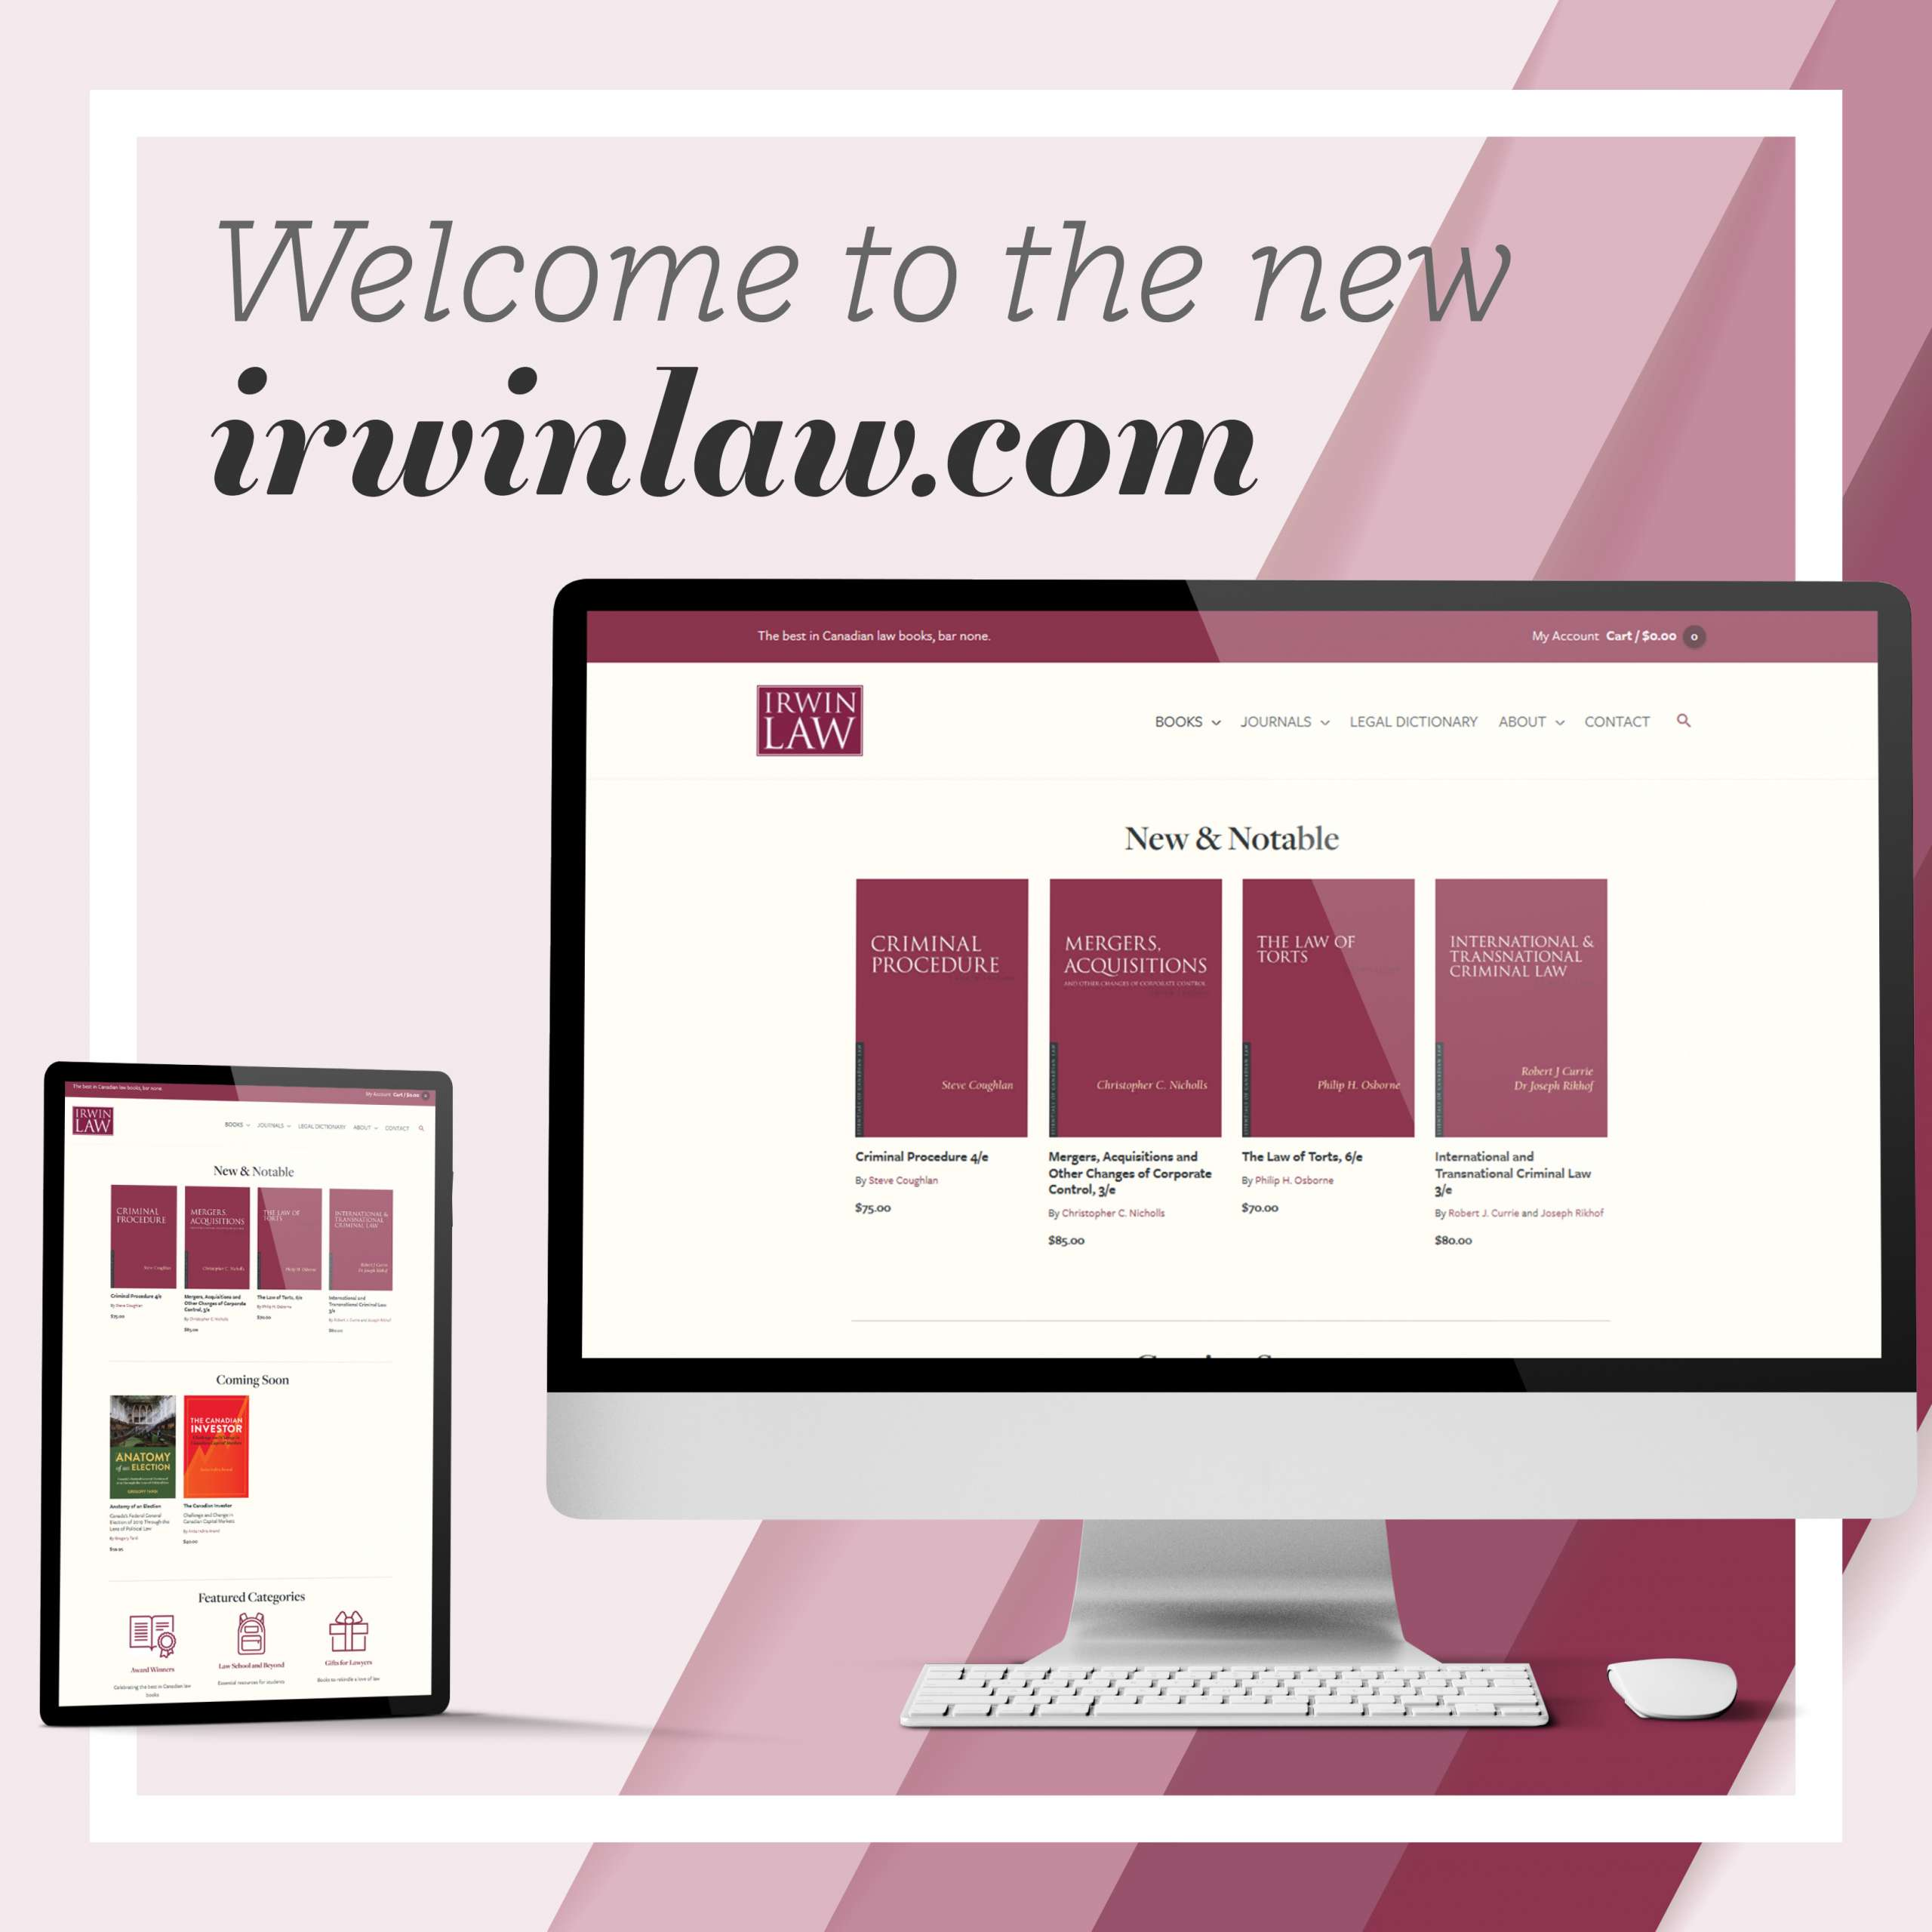 Graphic announcing the re-launch of irwinlaw.com. It shows the new website on a large monitor and a tablet.